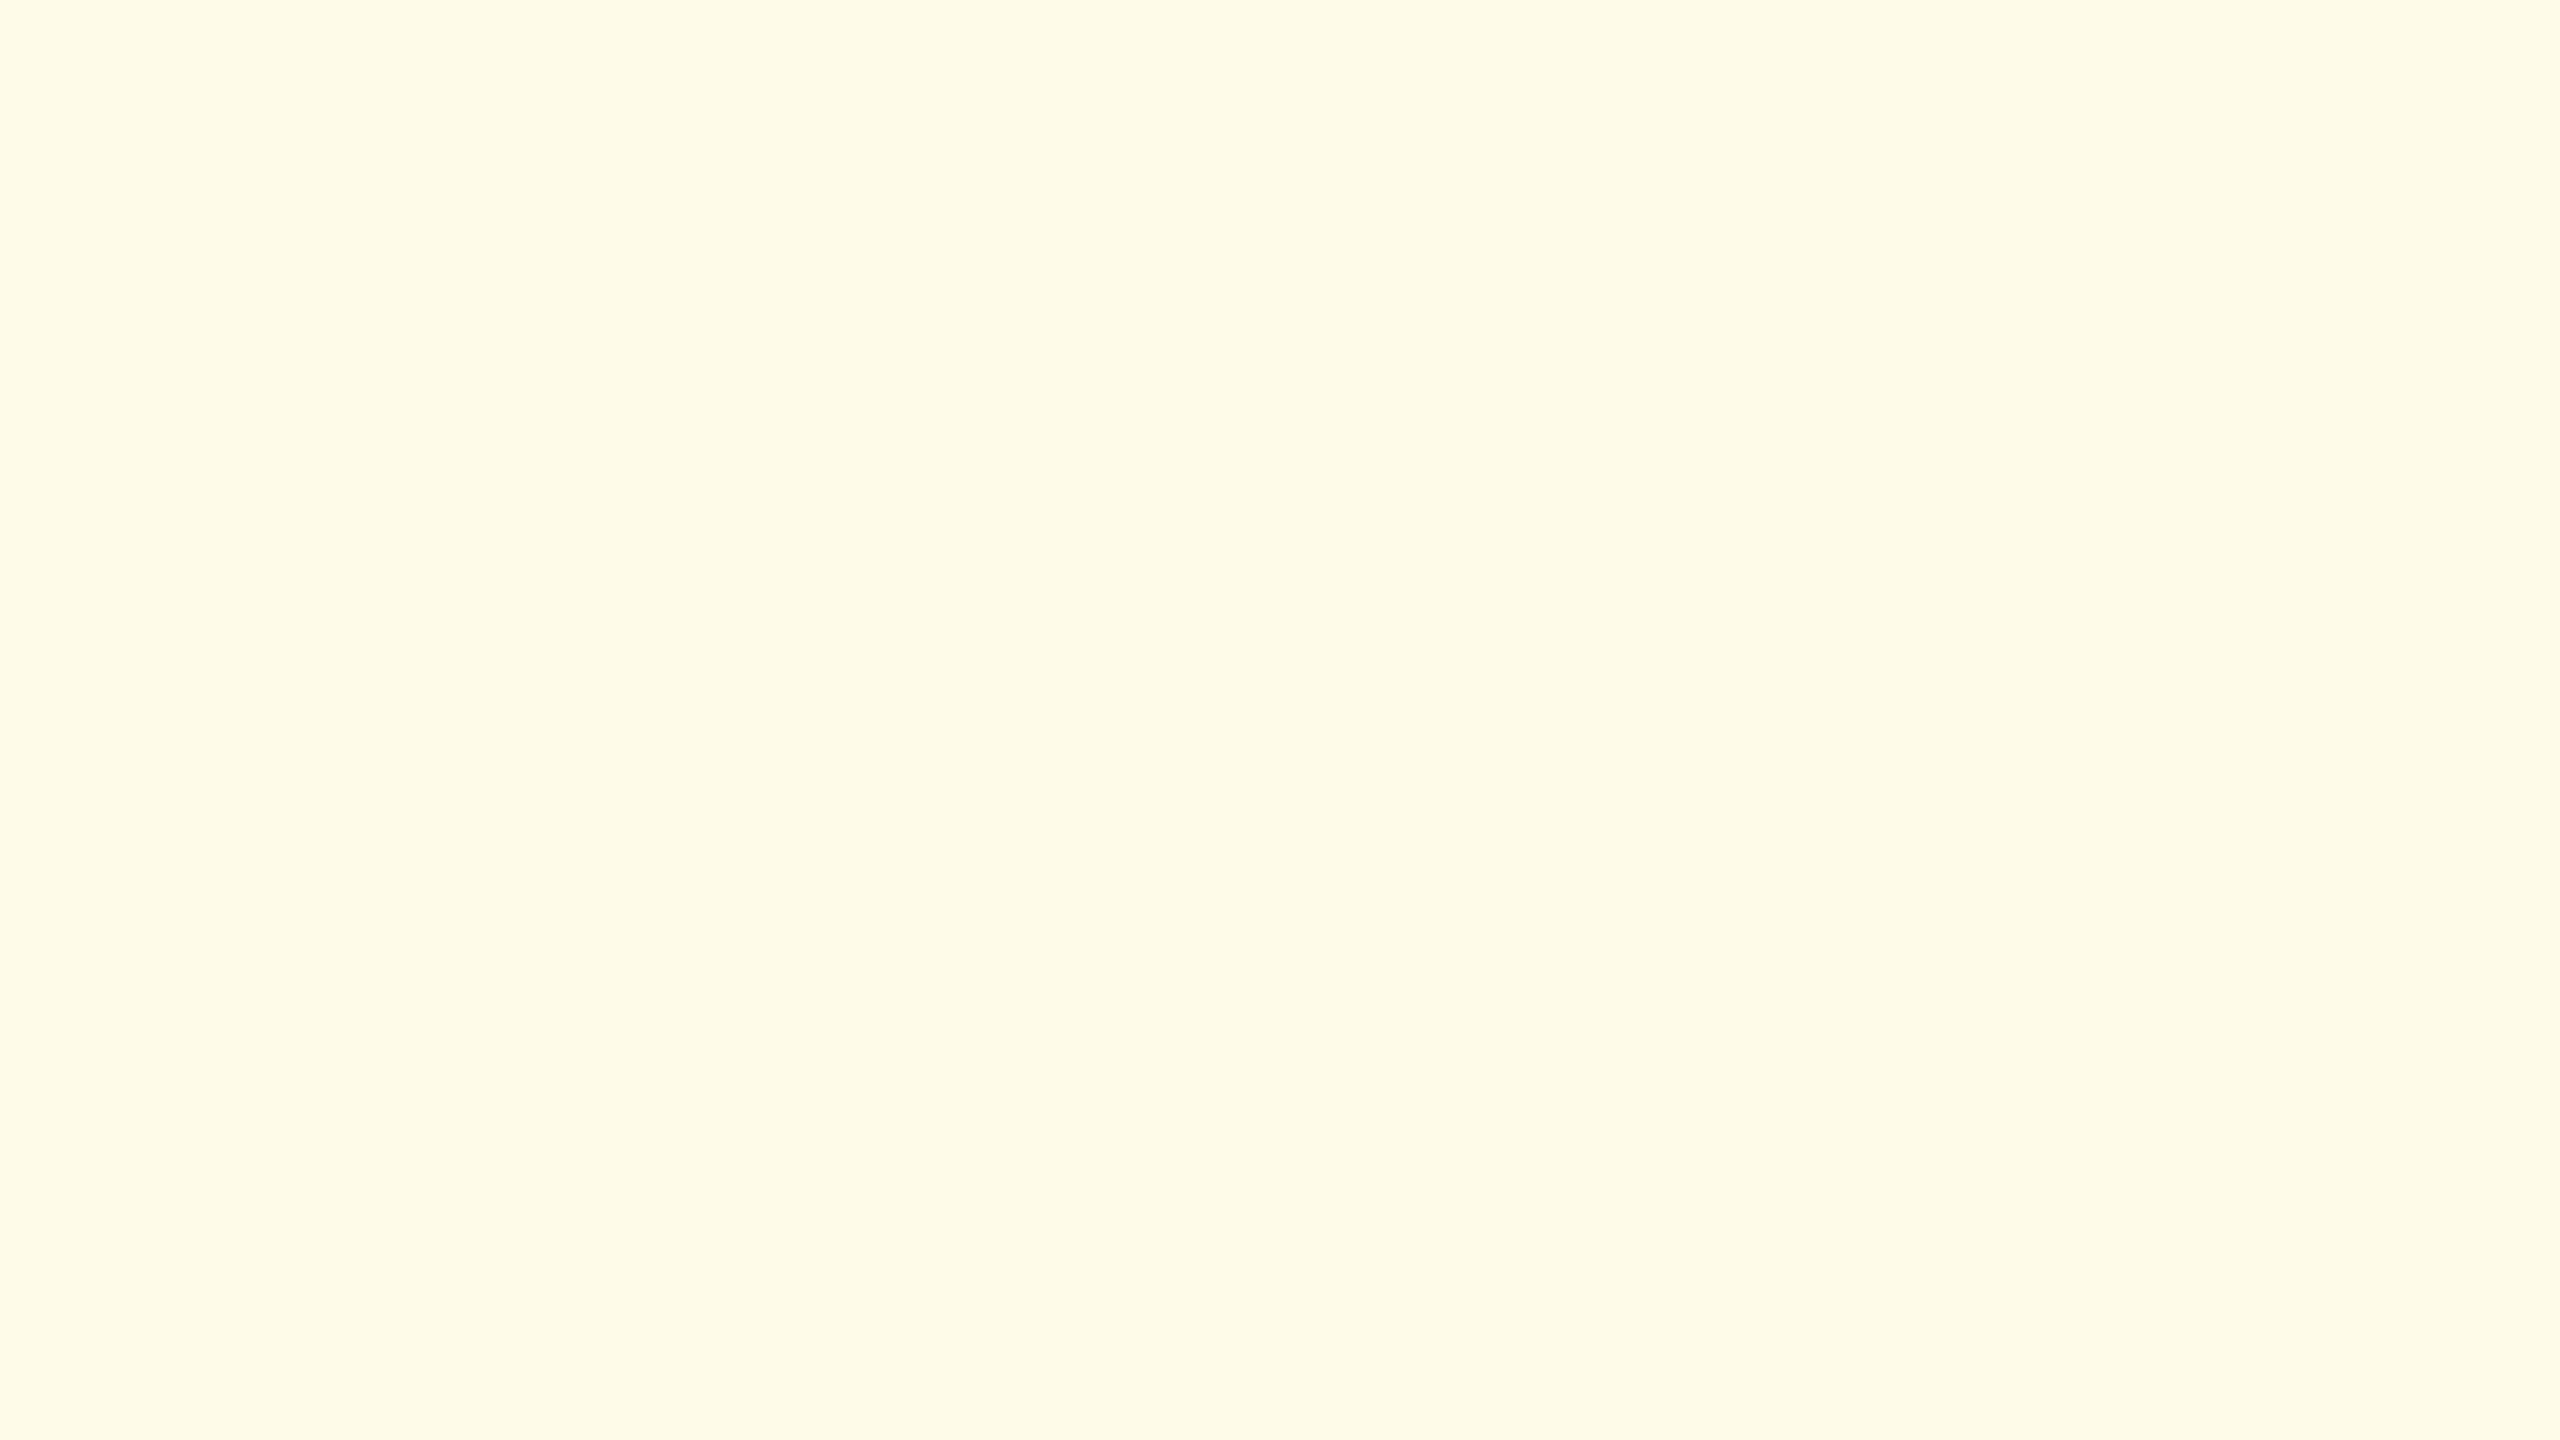 2560x1440 Cosmic Latte Solid Color Background